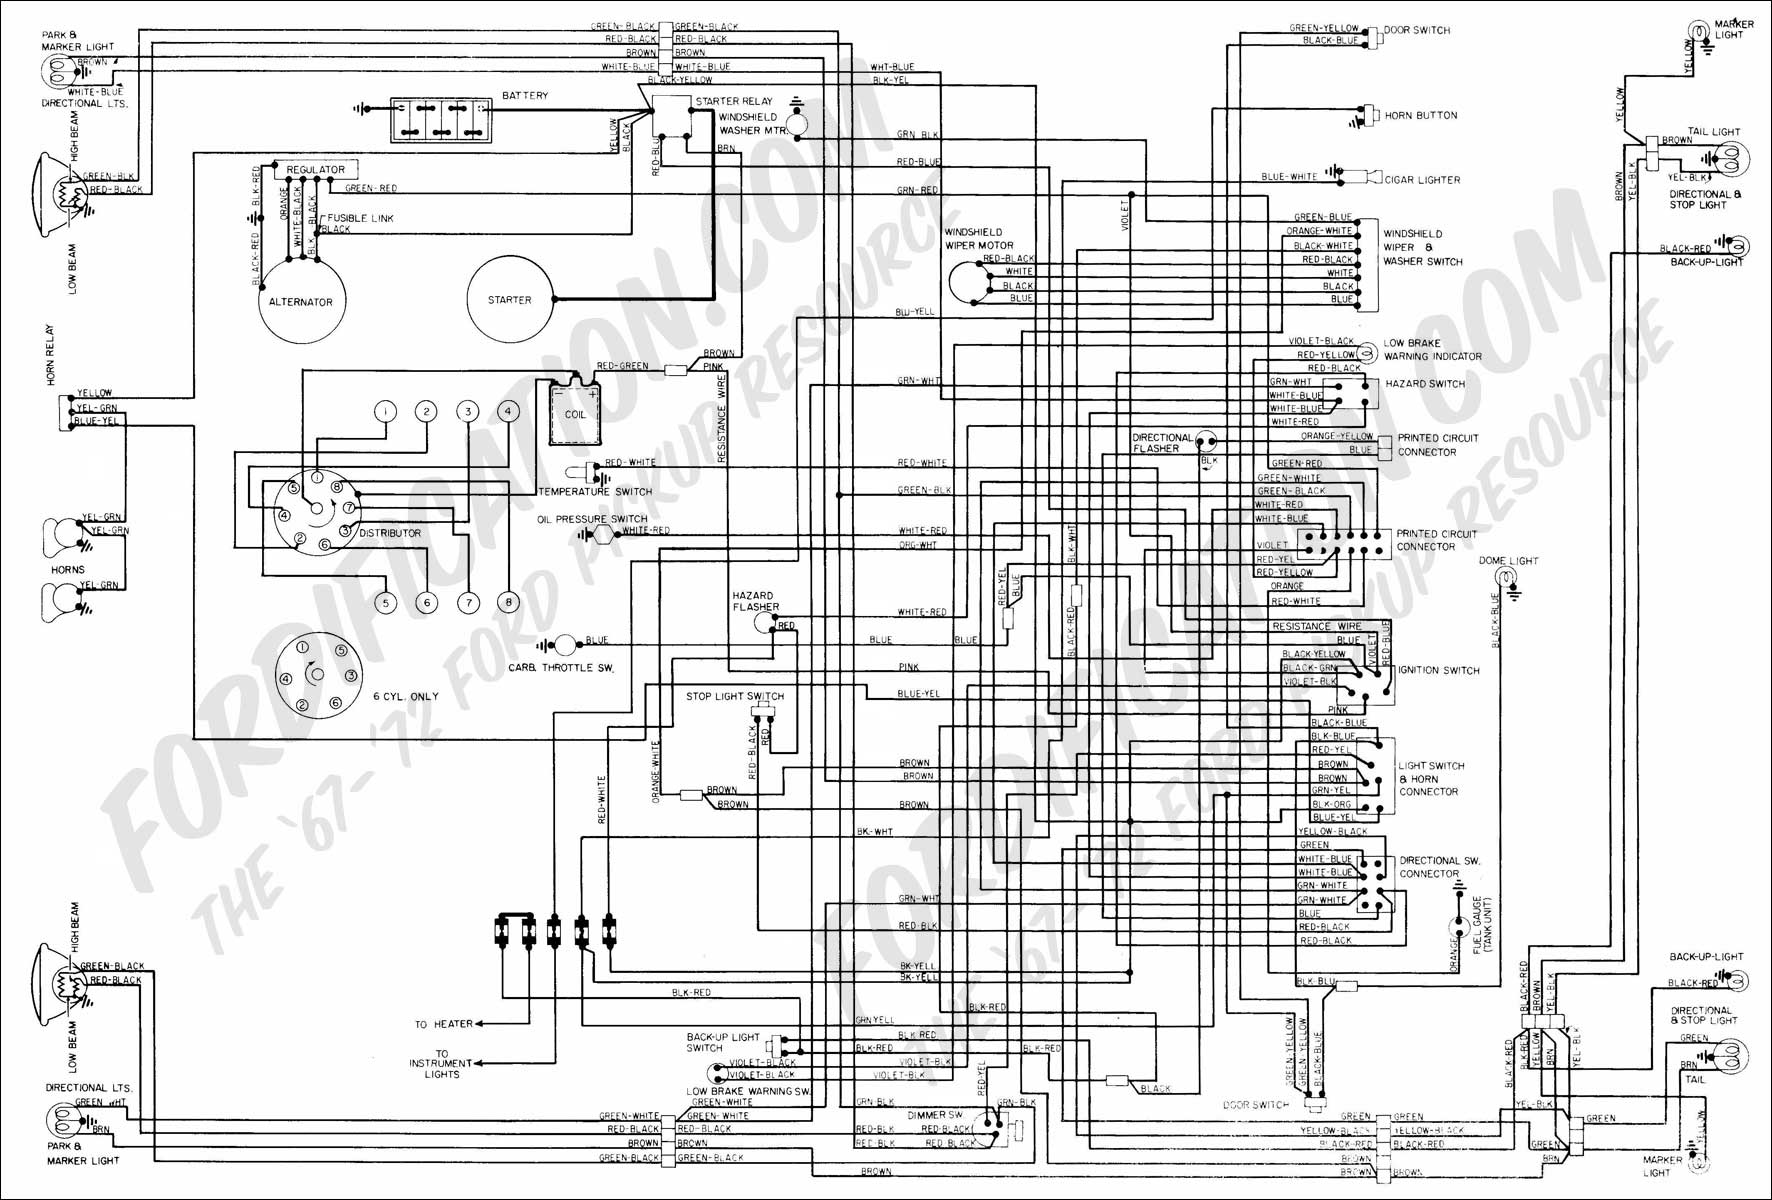 1967 ford fairlane wiring diagram ford truck technical drawings and schematics - section h - wiring diagrams